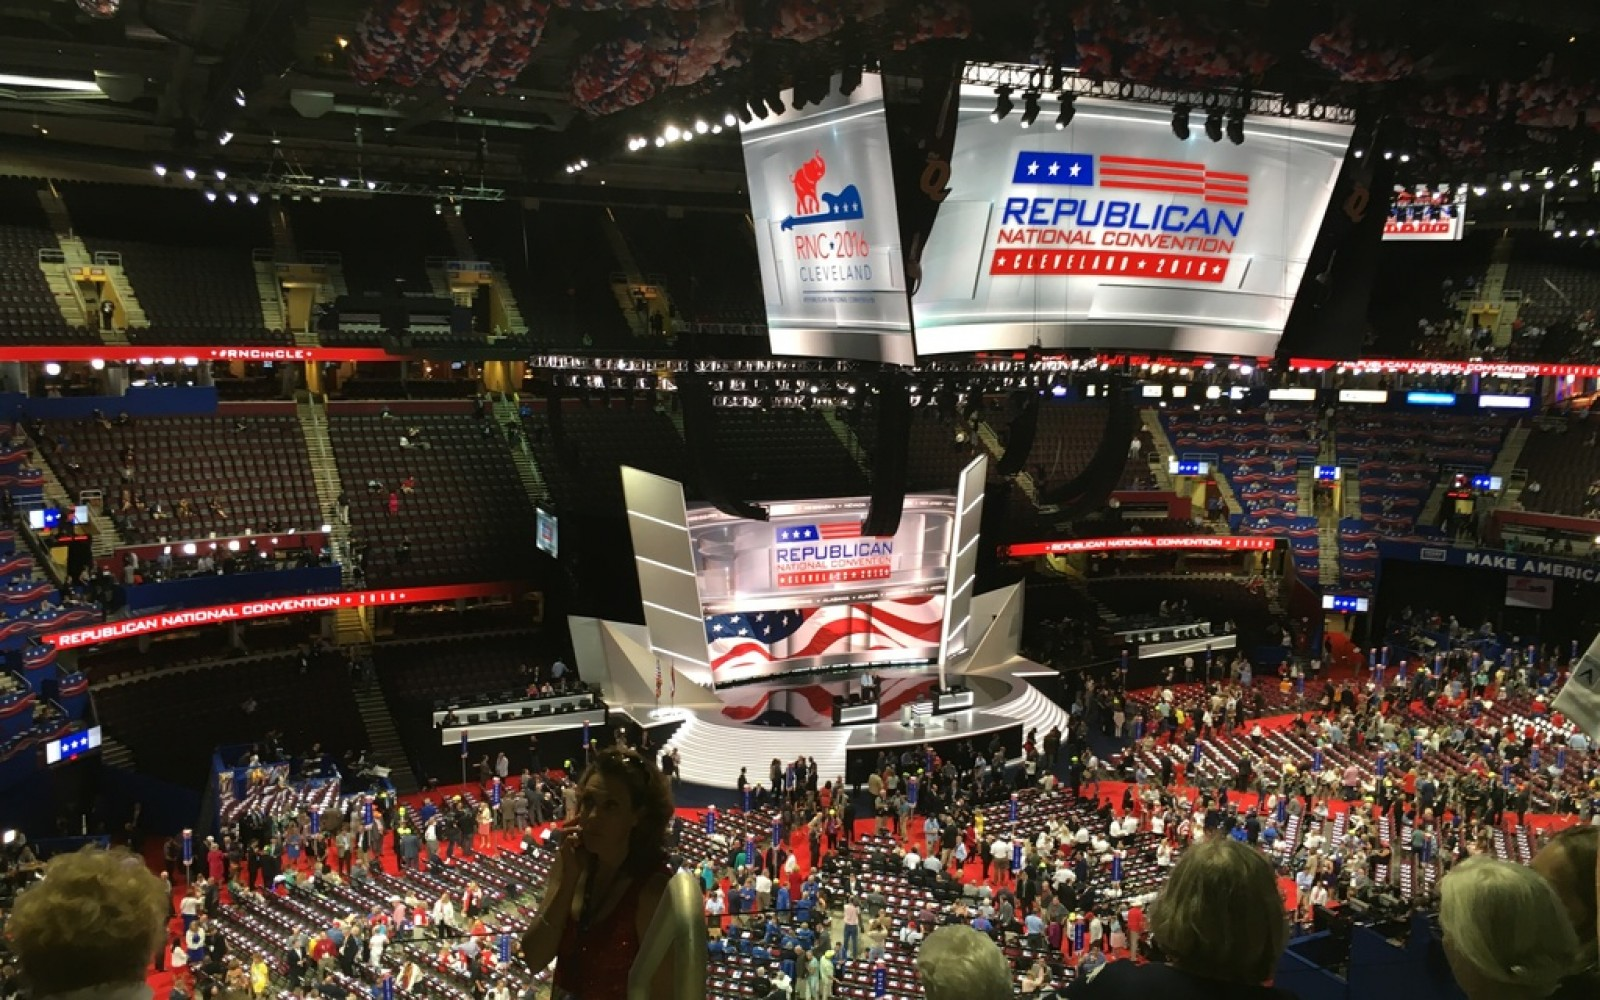 Here Are 22 Lies Told So Far At The 2016 RNC Convention In Cleveland